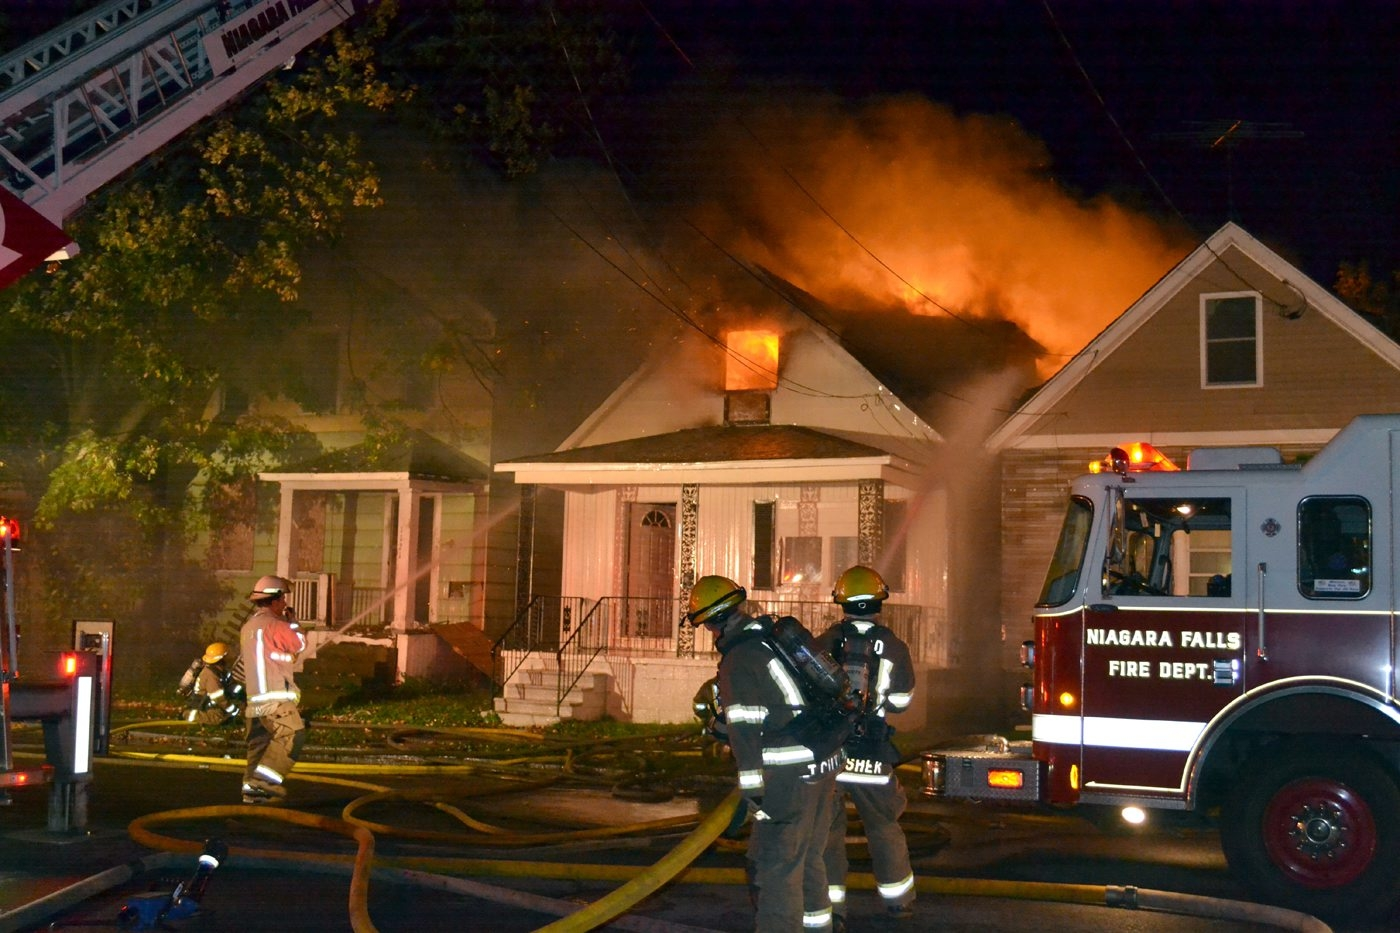 Niagara Falls firefighters battle a blaze at 1119 Pierce Ave. early today.